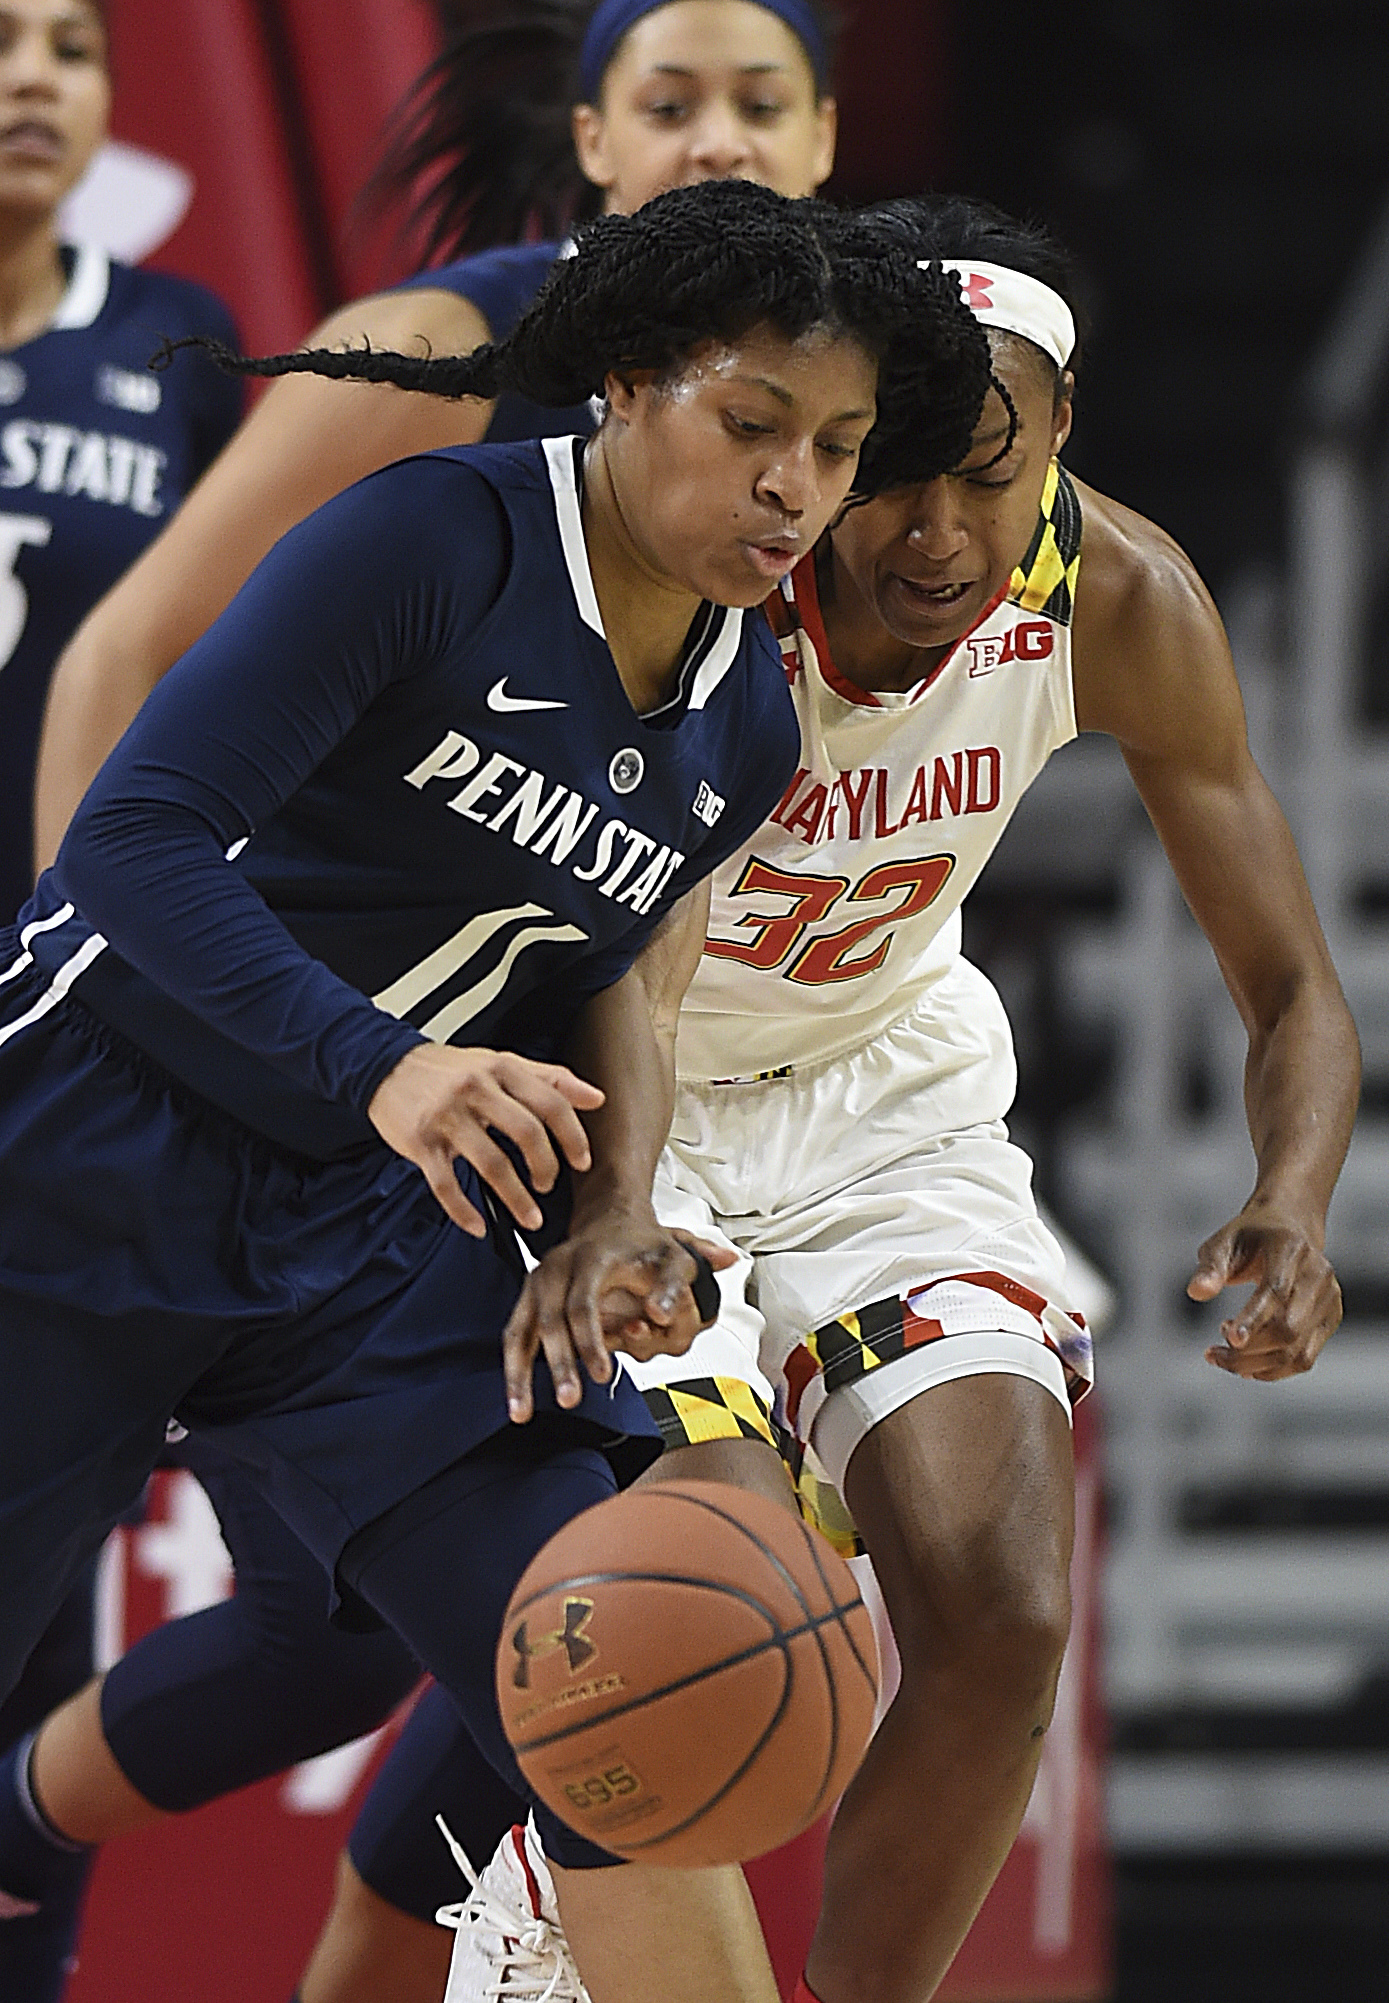 Penn State's Teniya Page, left, recovers a loose ball ahead of Maryland's Shatori Walker-Kimbrough during the second half of an NCAA college basketball game, Wednesday, Jan. 11, 2017, in College Park, Md. Maryland won 89-83. (AP Photo/Gail Burton)